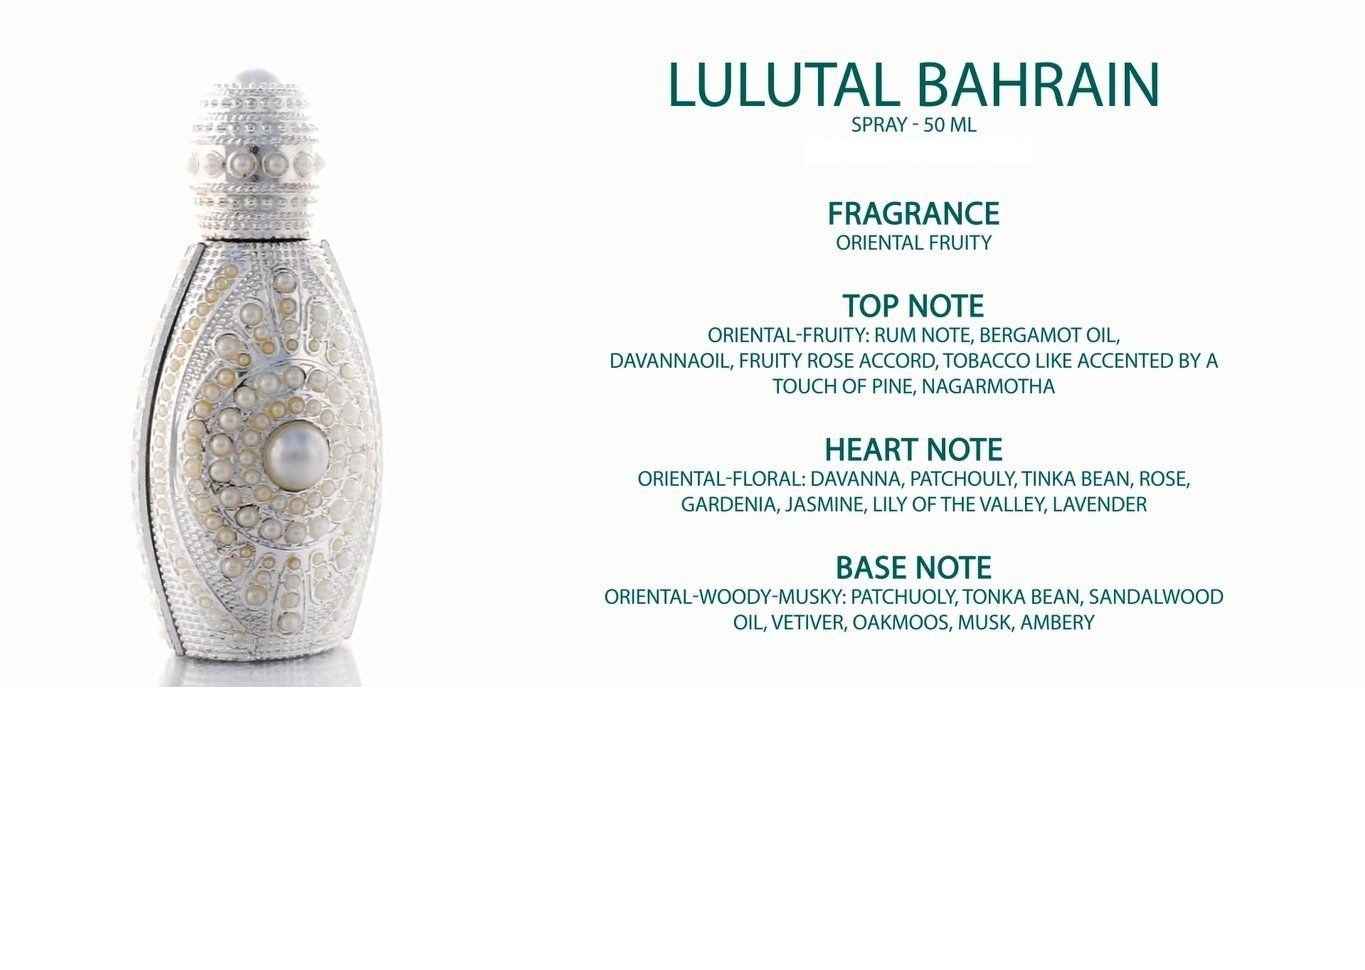 Lulatal Bahrain Spray Perfume 50ml by Asgharali